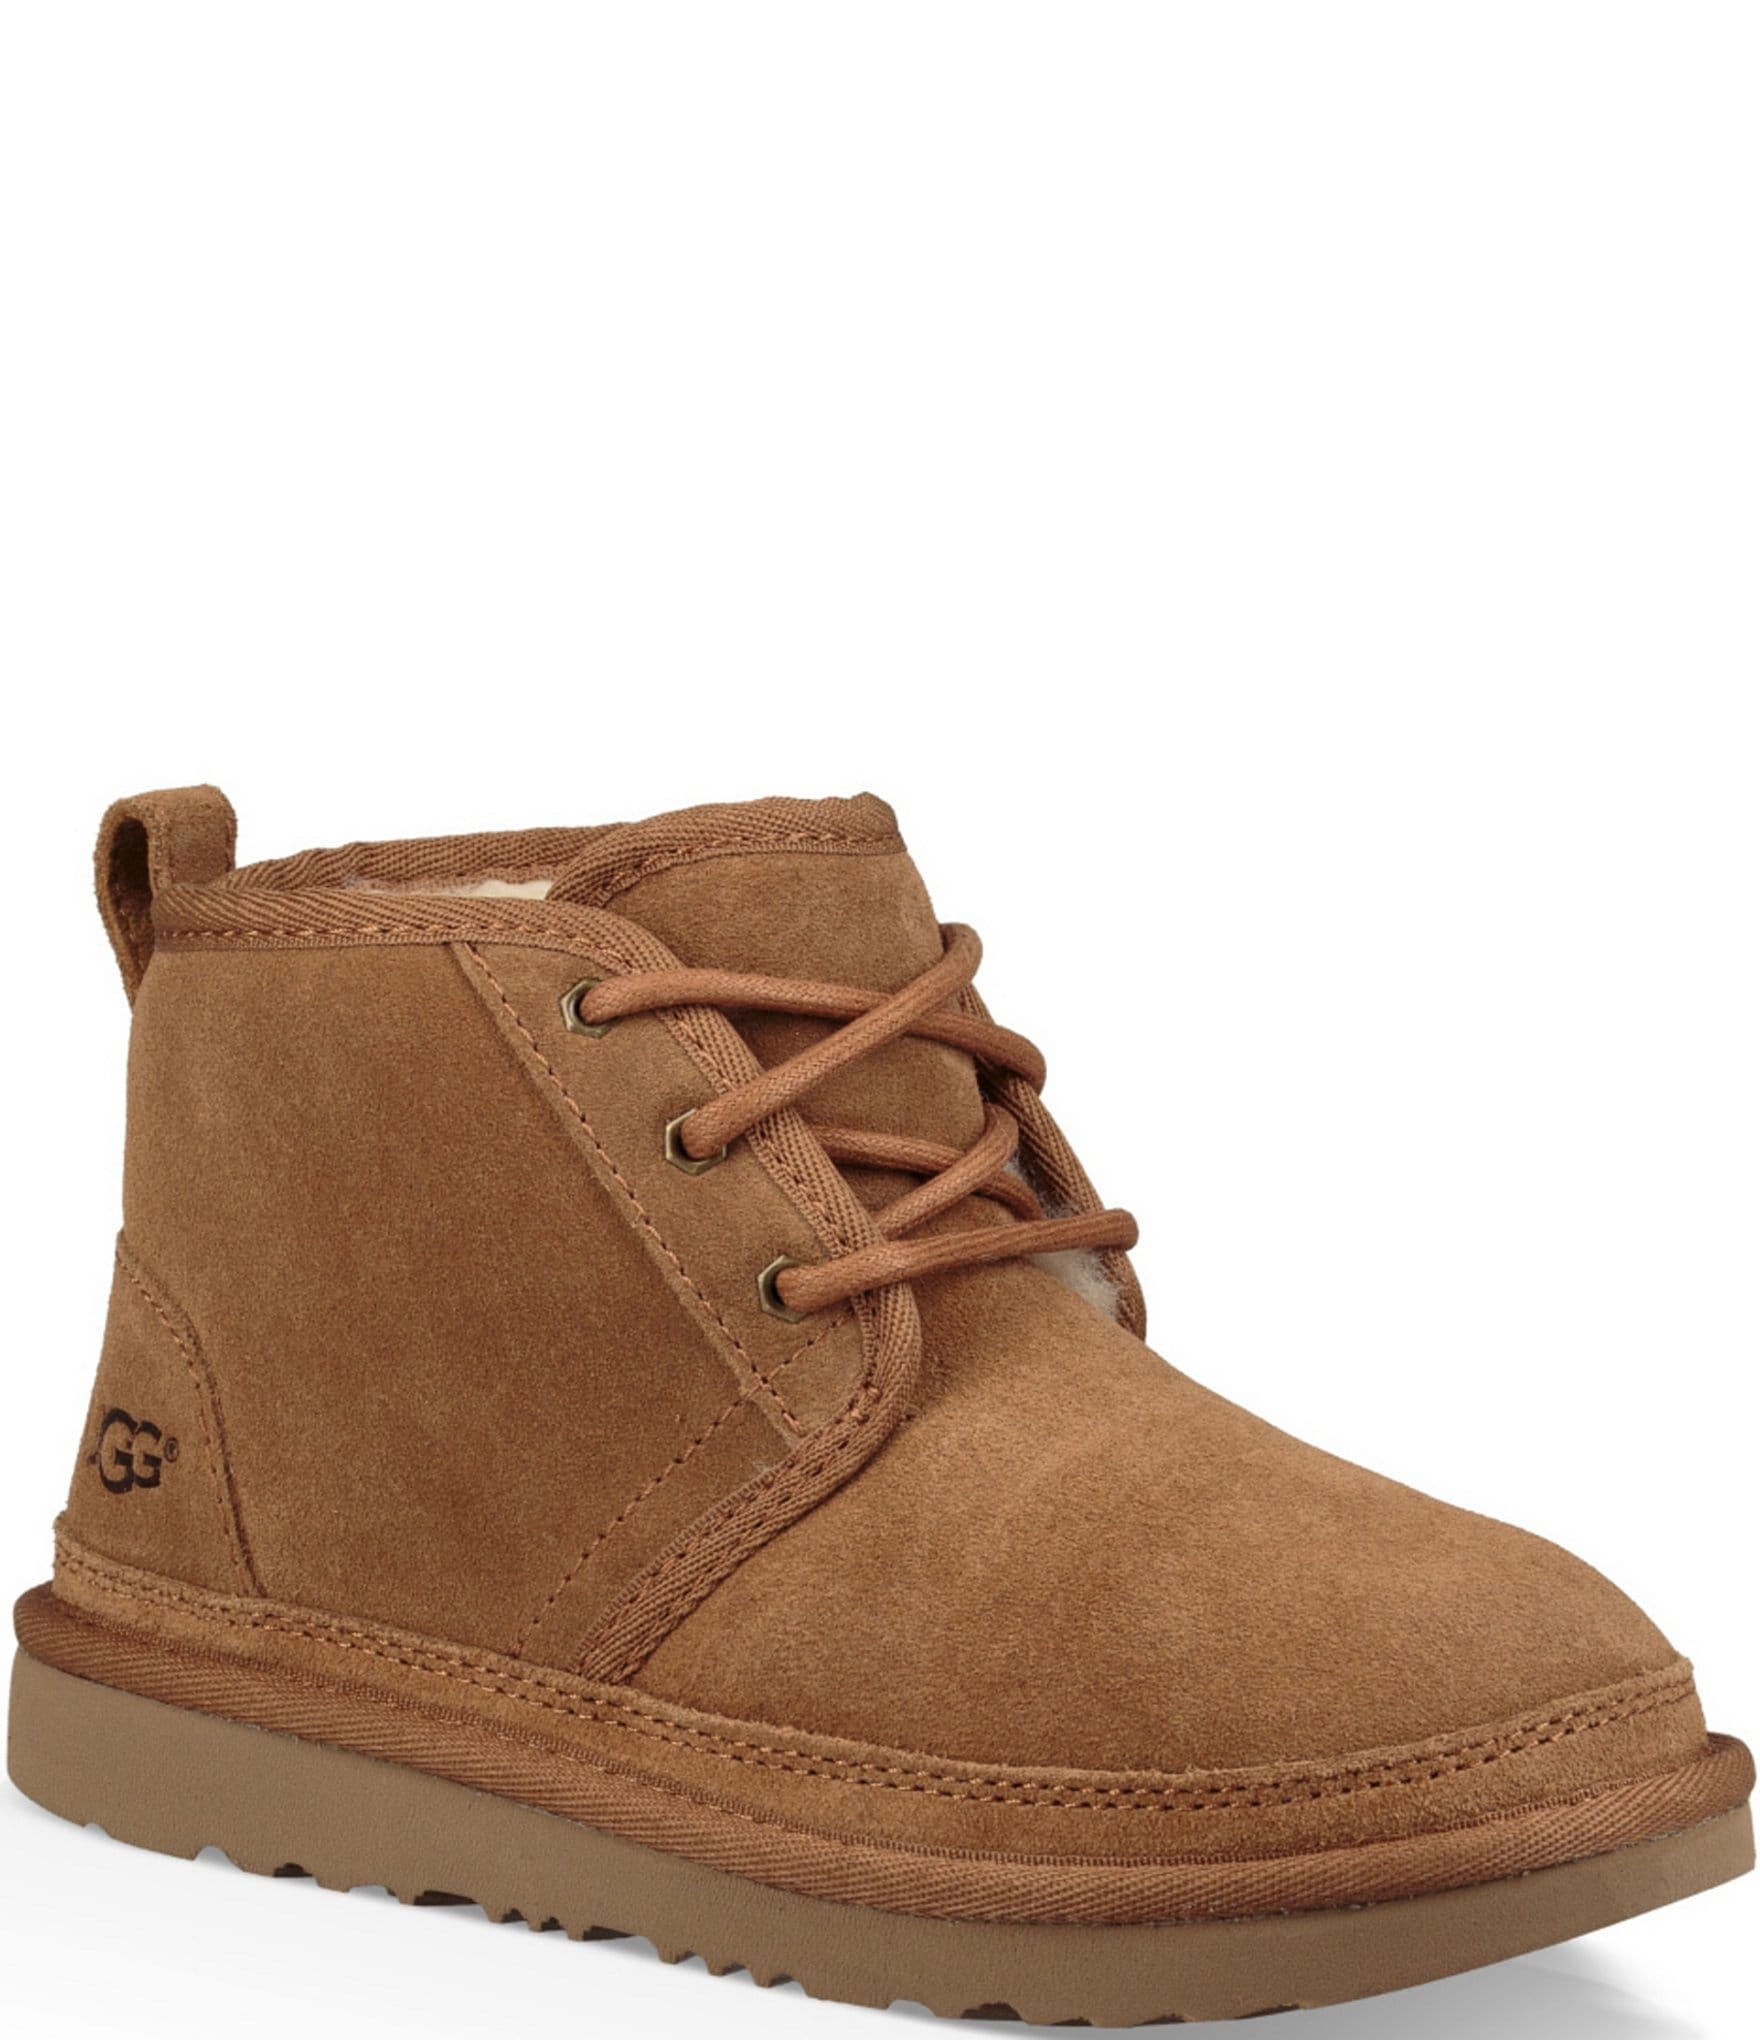 ugg factory dillards ladies uggs outlet online,cheap ugg boots clearance,ugg outlet for you! You won't find cheaper UGG boots and footwear anywhere else than Get The Label! Save up to on women's and girls' styles of the iconic Ugg.